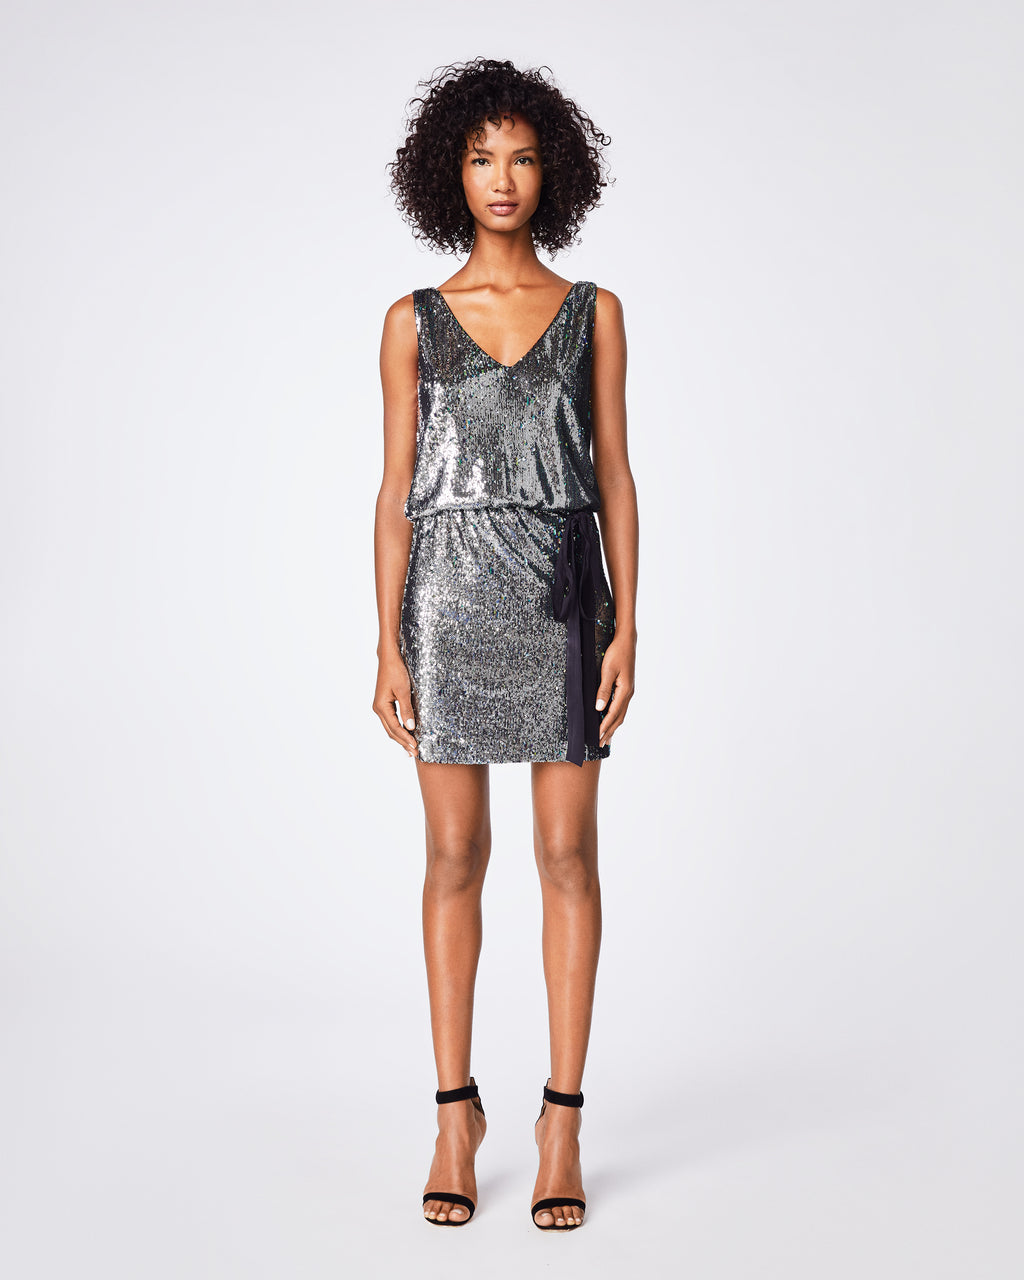 BP10252 - MERMAID SEQUIN V-NECK DRESS - dresses - short - Hello, party look. This sequin dress features an elastic waistband that perfectly displays a black drawstring bow. We recommend pairing it with a leather jacket and black boots. Final Sale